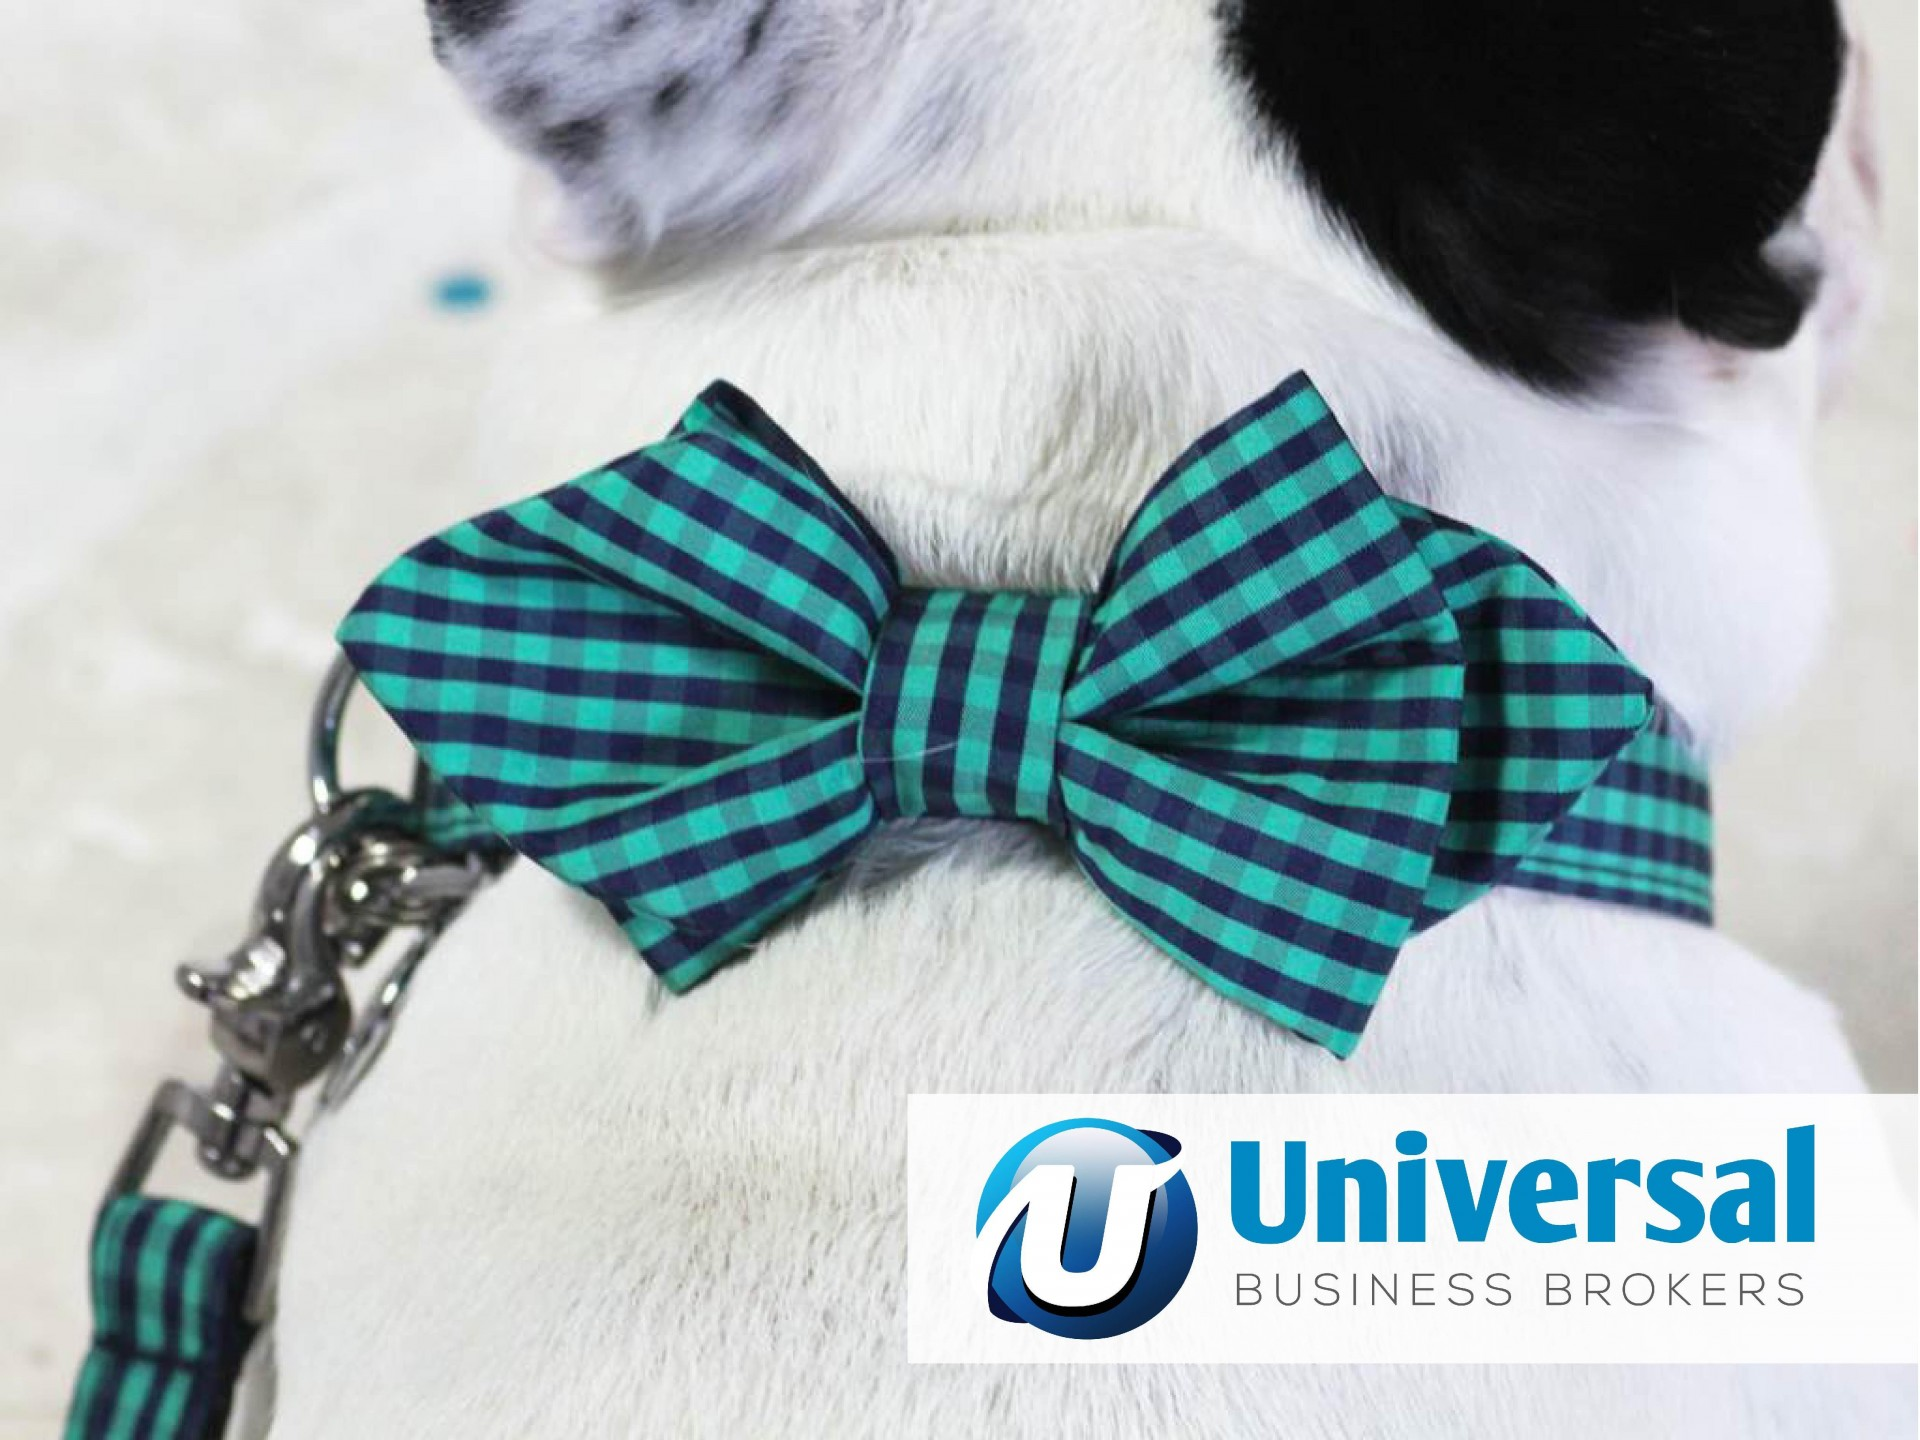 Designer pet accessories Retail and Online business for sale in Sydney